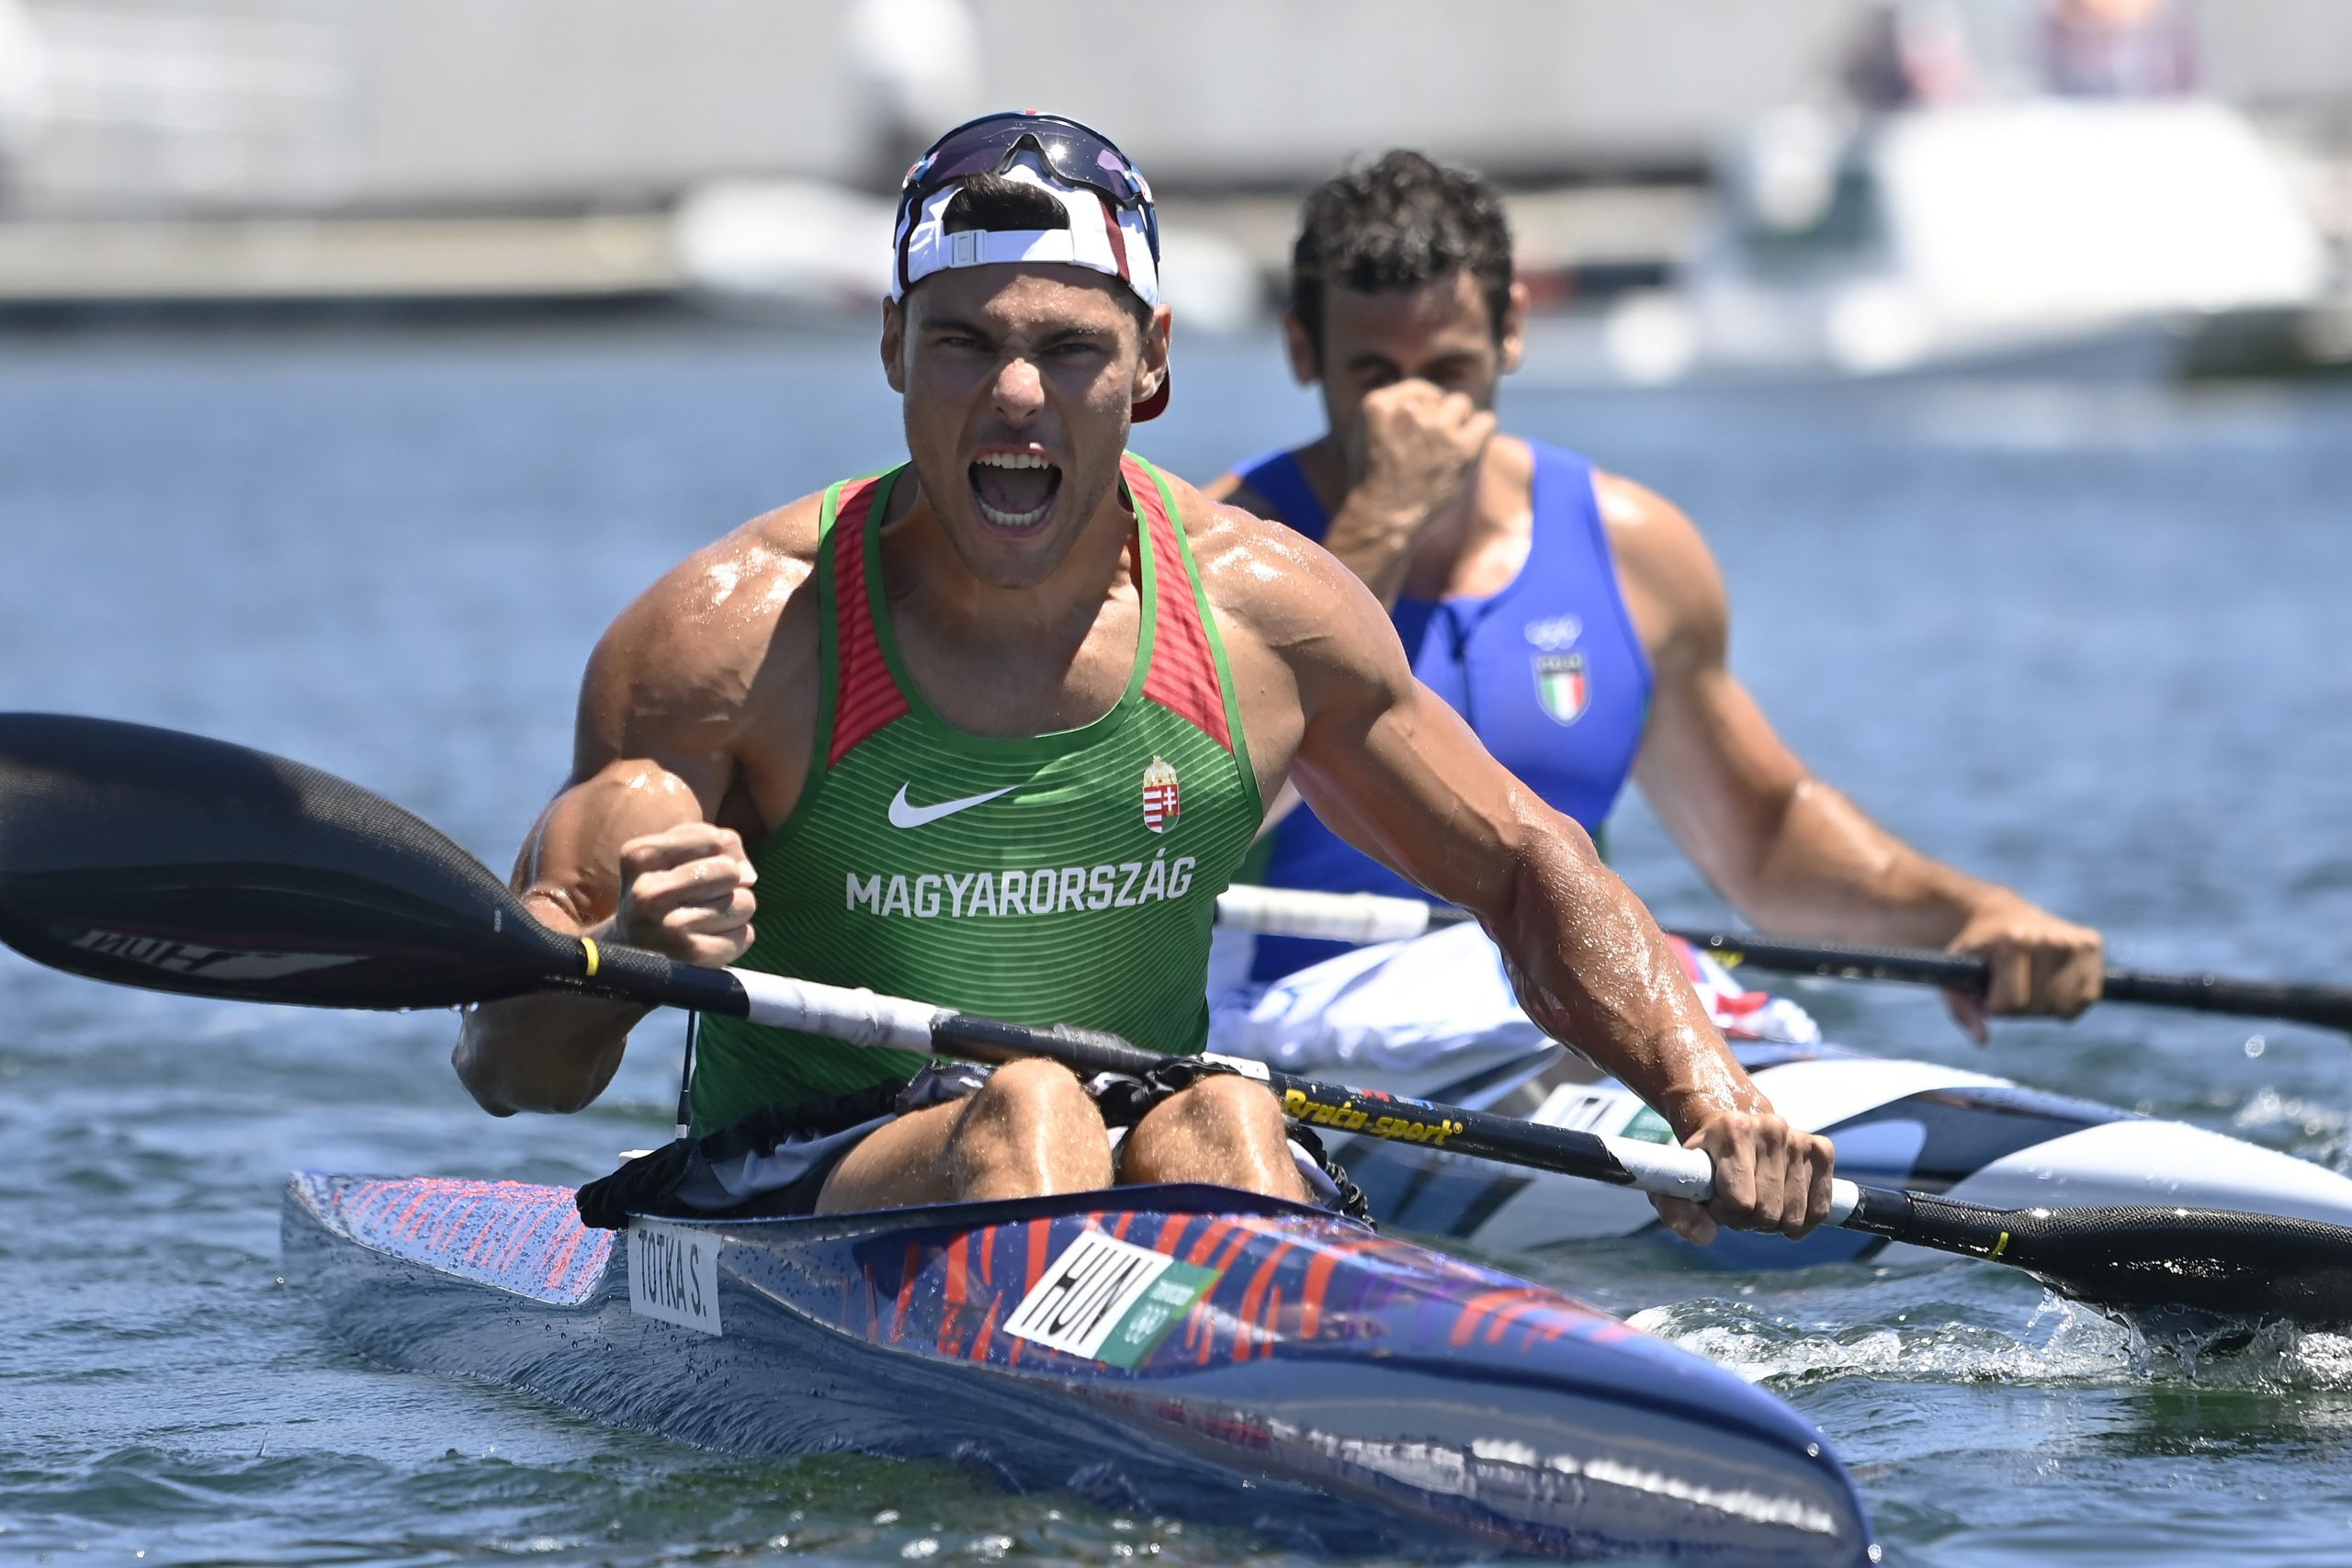 """Sándor Tótka's Olympic Gold: """"I Am the Fastest Kayaker in the World"""""""